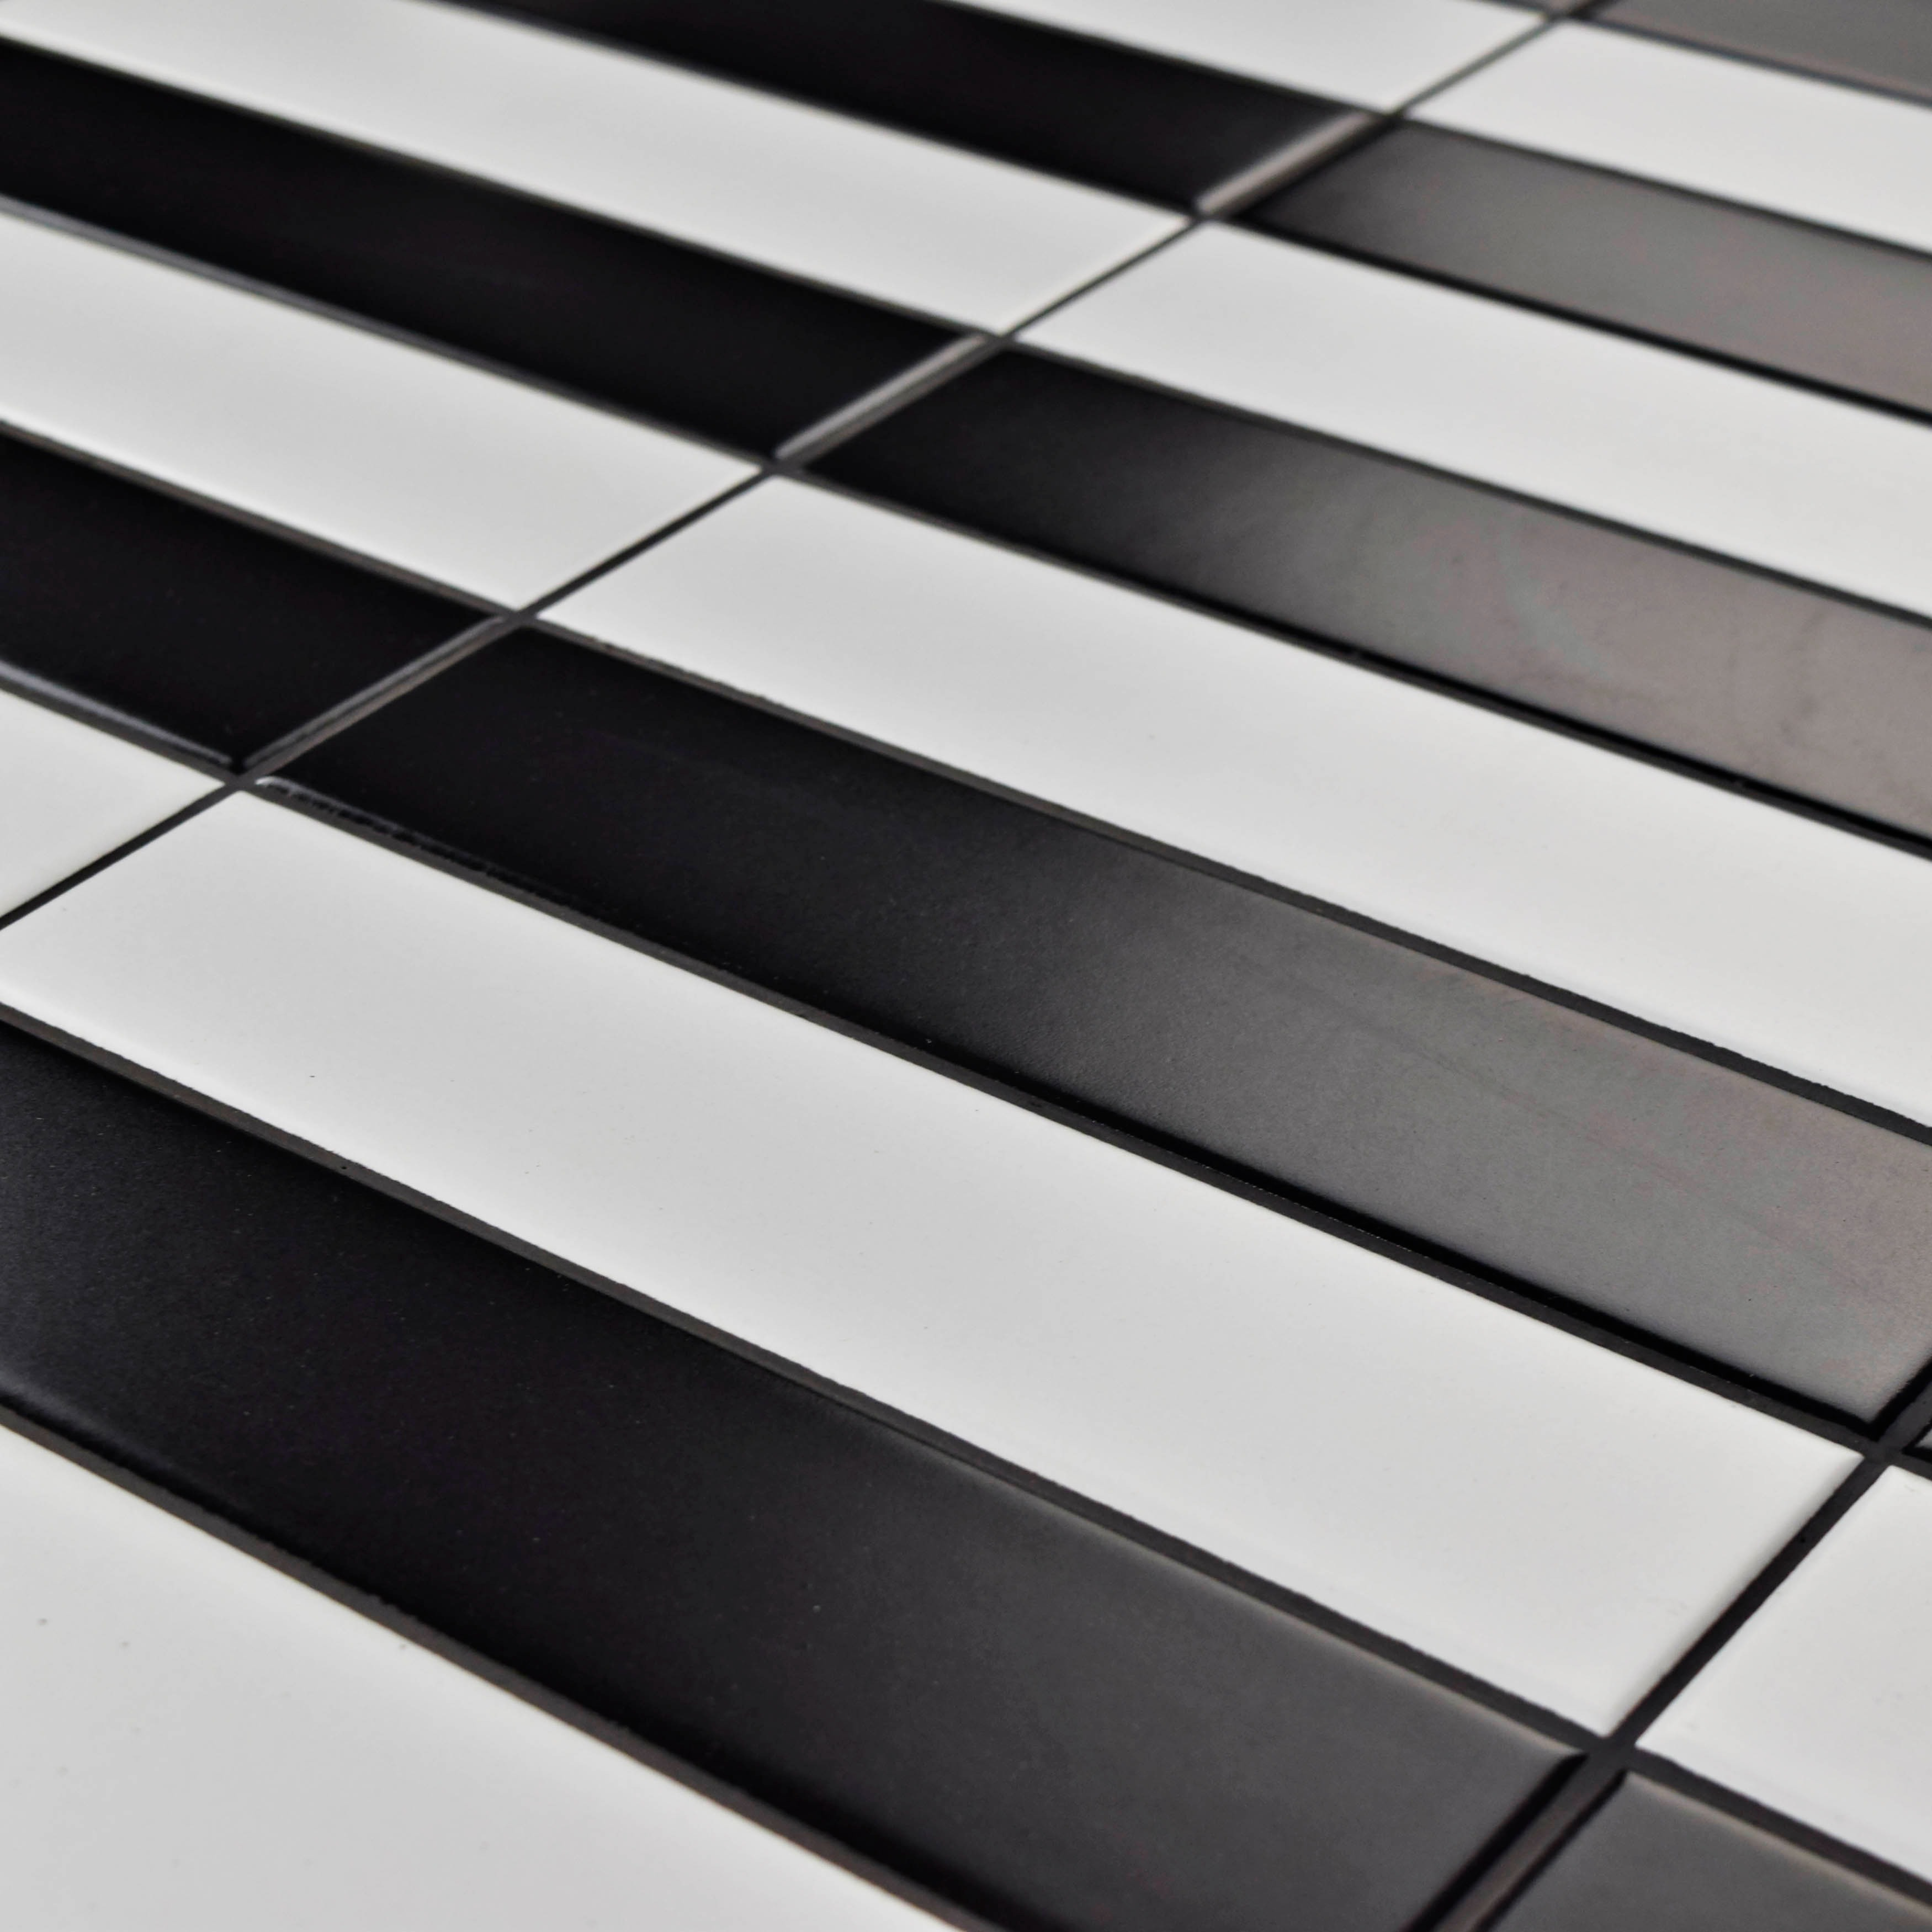 Somertile 175x775 inch victorian soho subway matte black porcelain somertile 175x775 inch victorian soho subway matte black porcelain floor and wall tile 10 tiles1 sqft free shipping on orders over 45 dailygadgetfo Choice Image